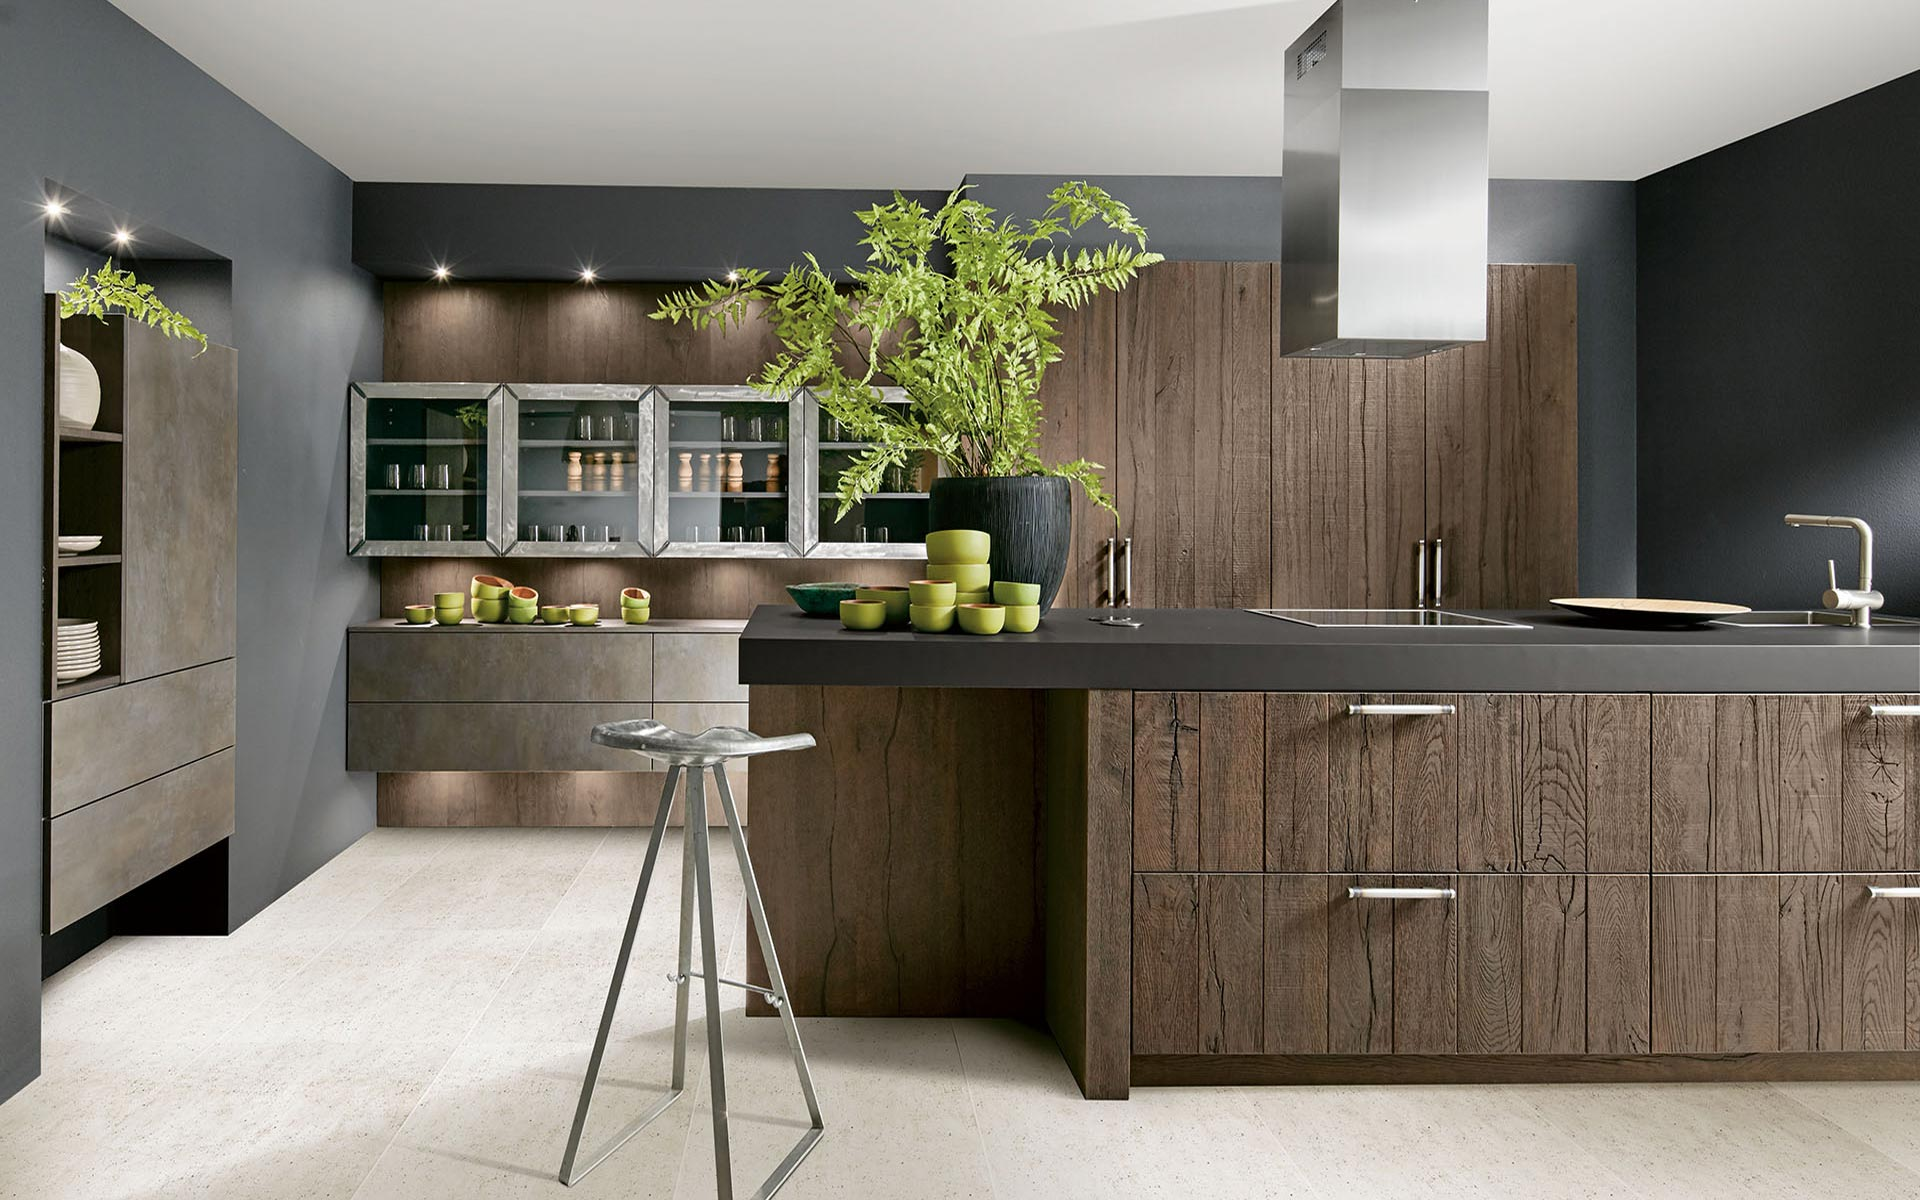 Toronto: Kitchens from Germany, Europe. Rough R15 Anticato Pastell Loam • Cemento Bronze